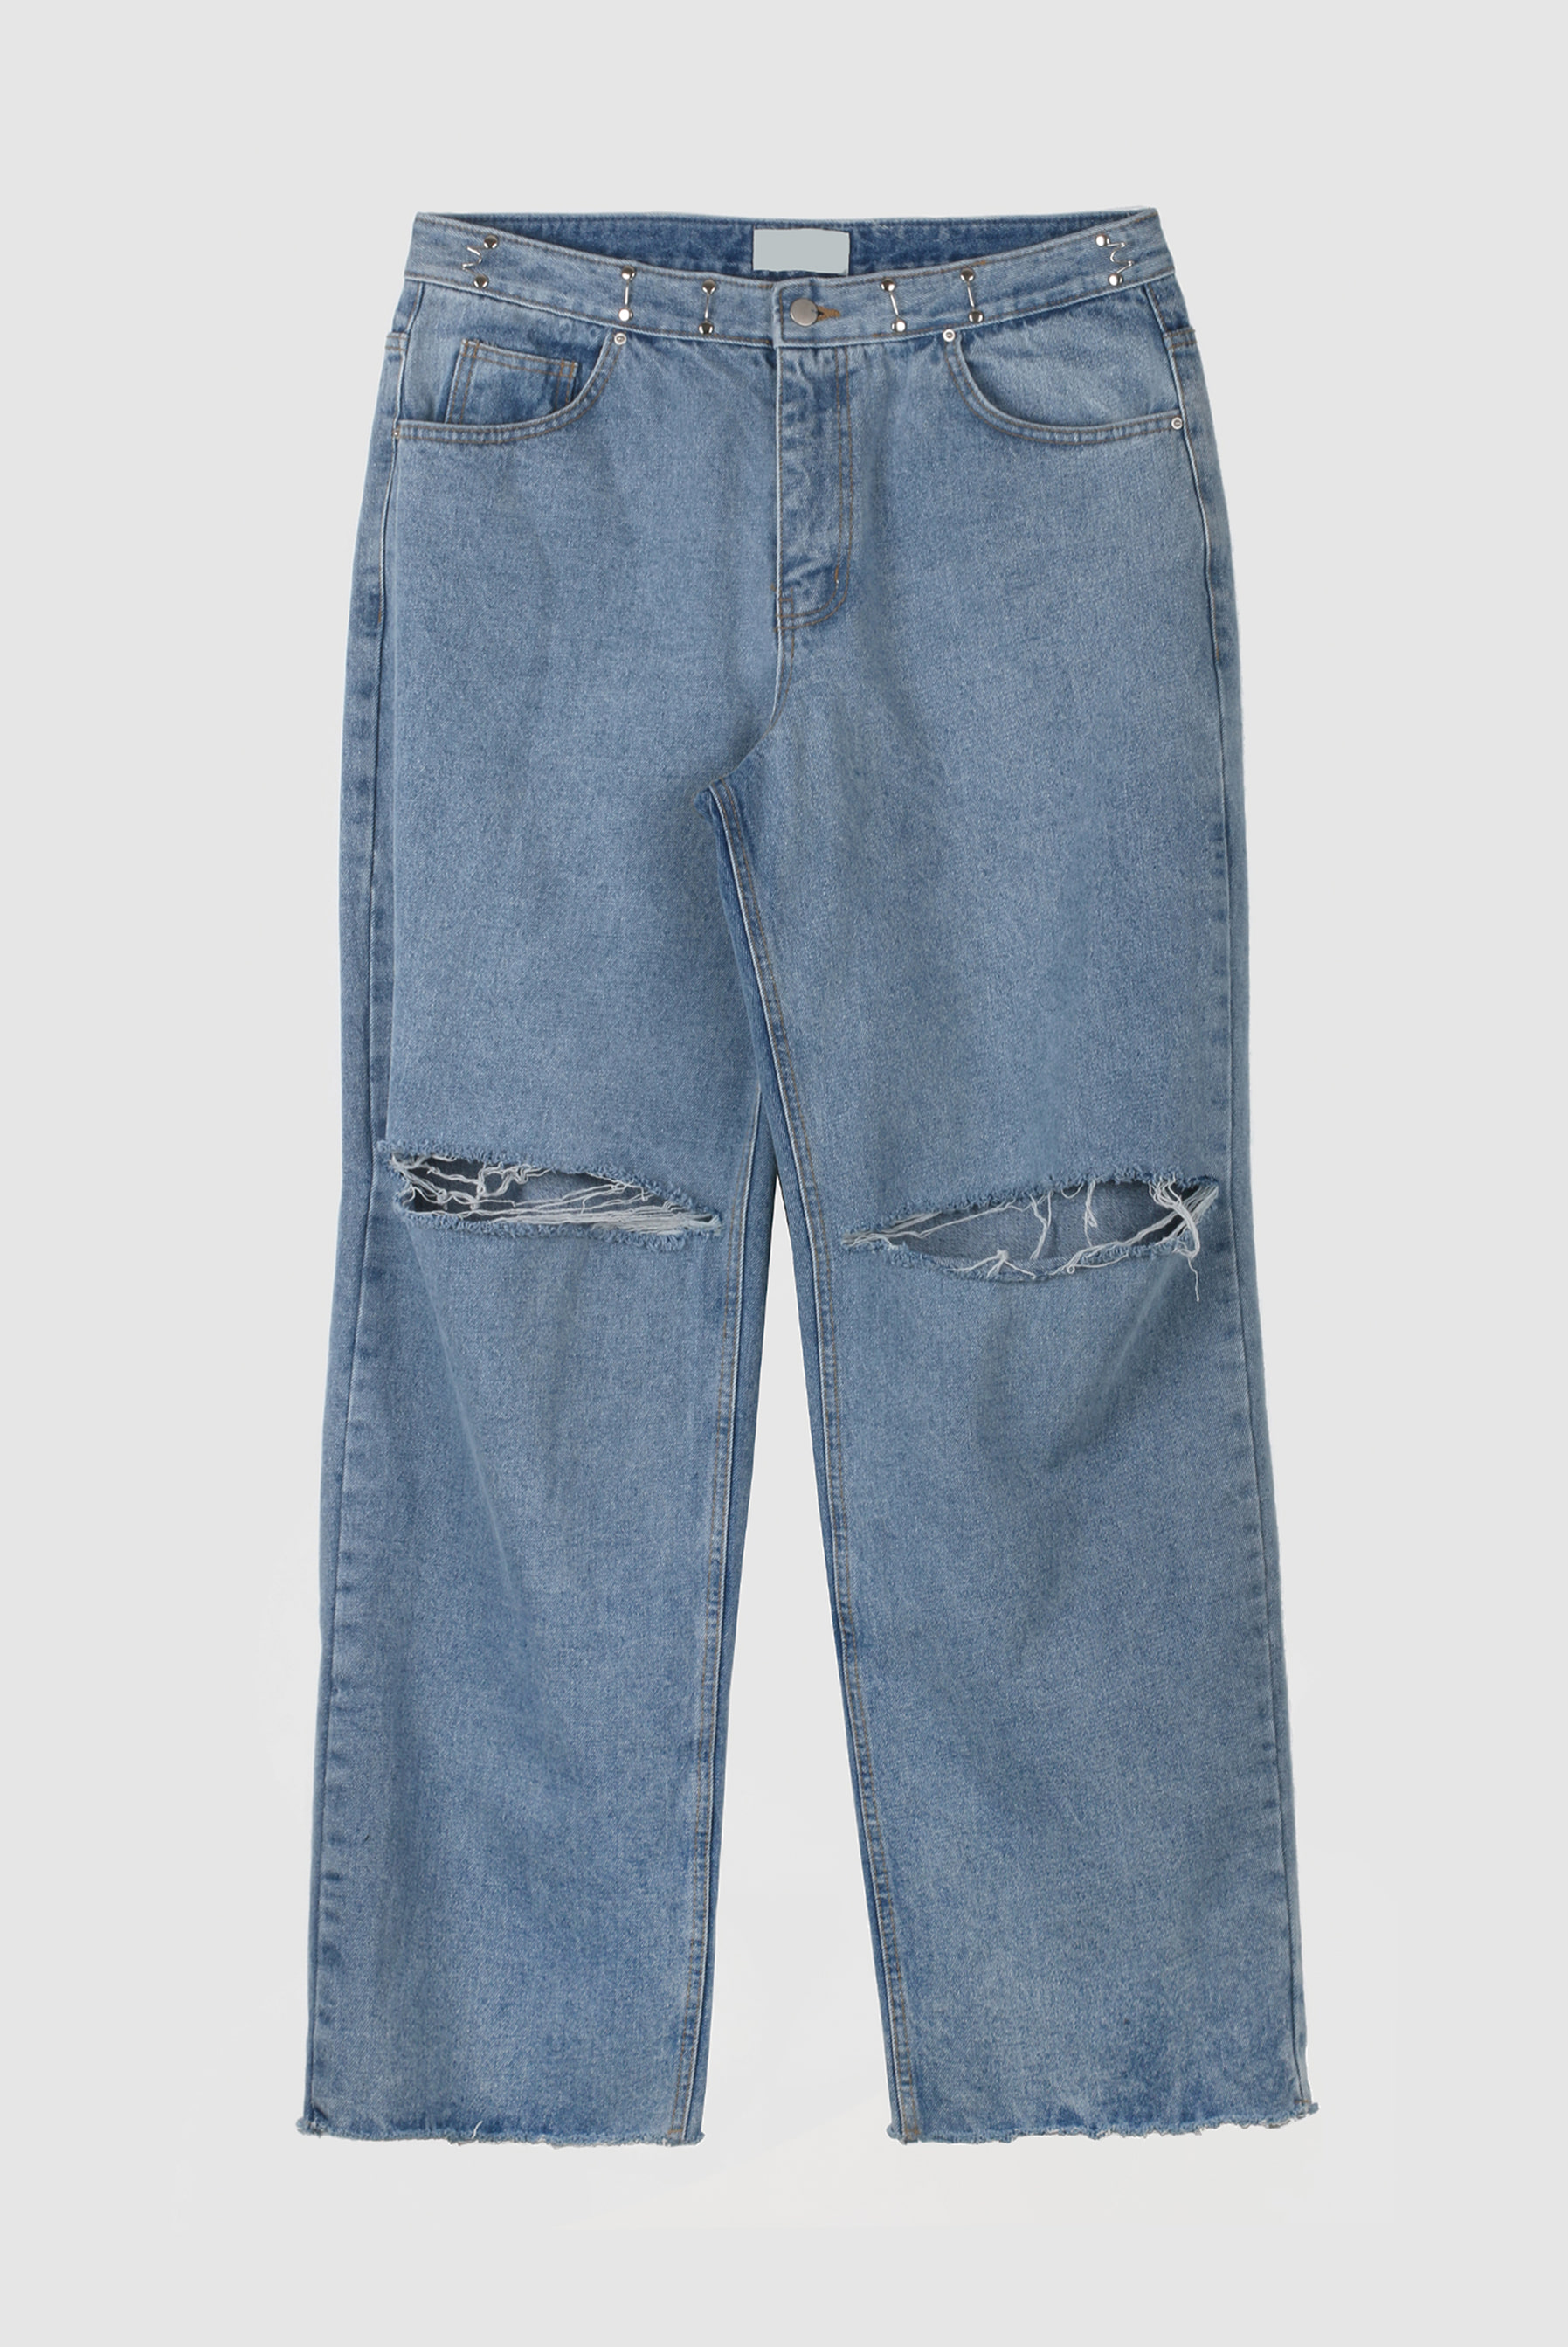 Hook_Belt Wide Denim_Pant